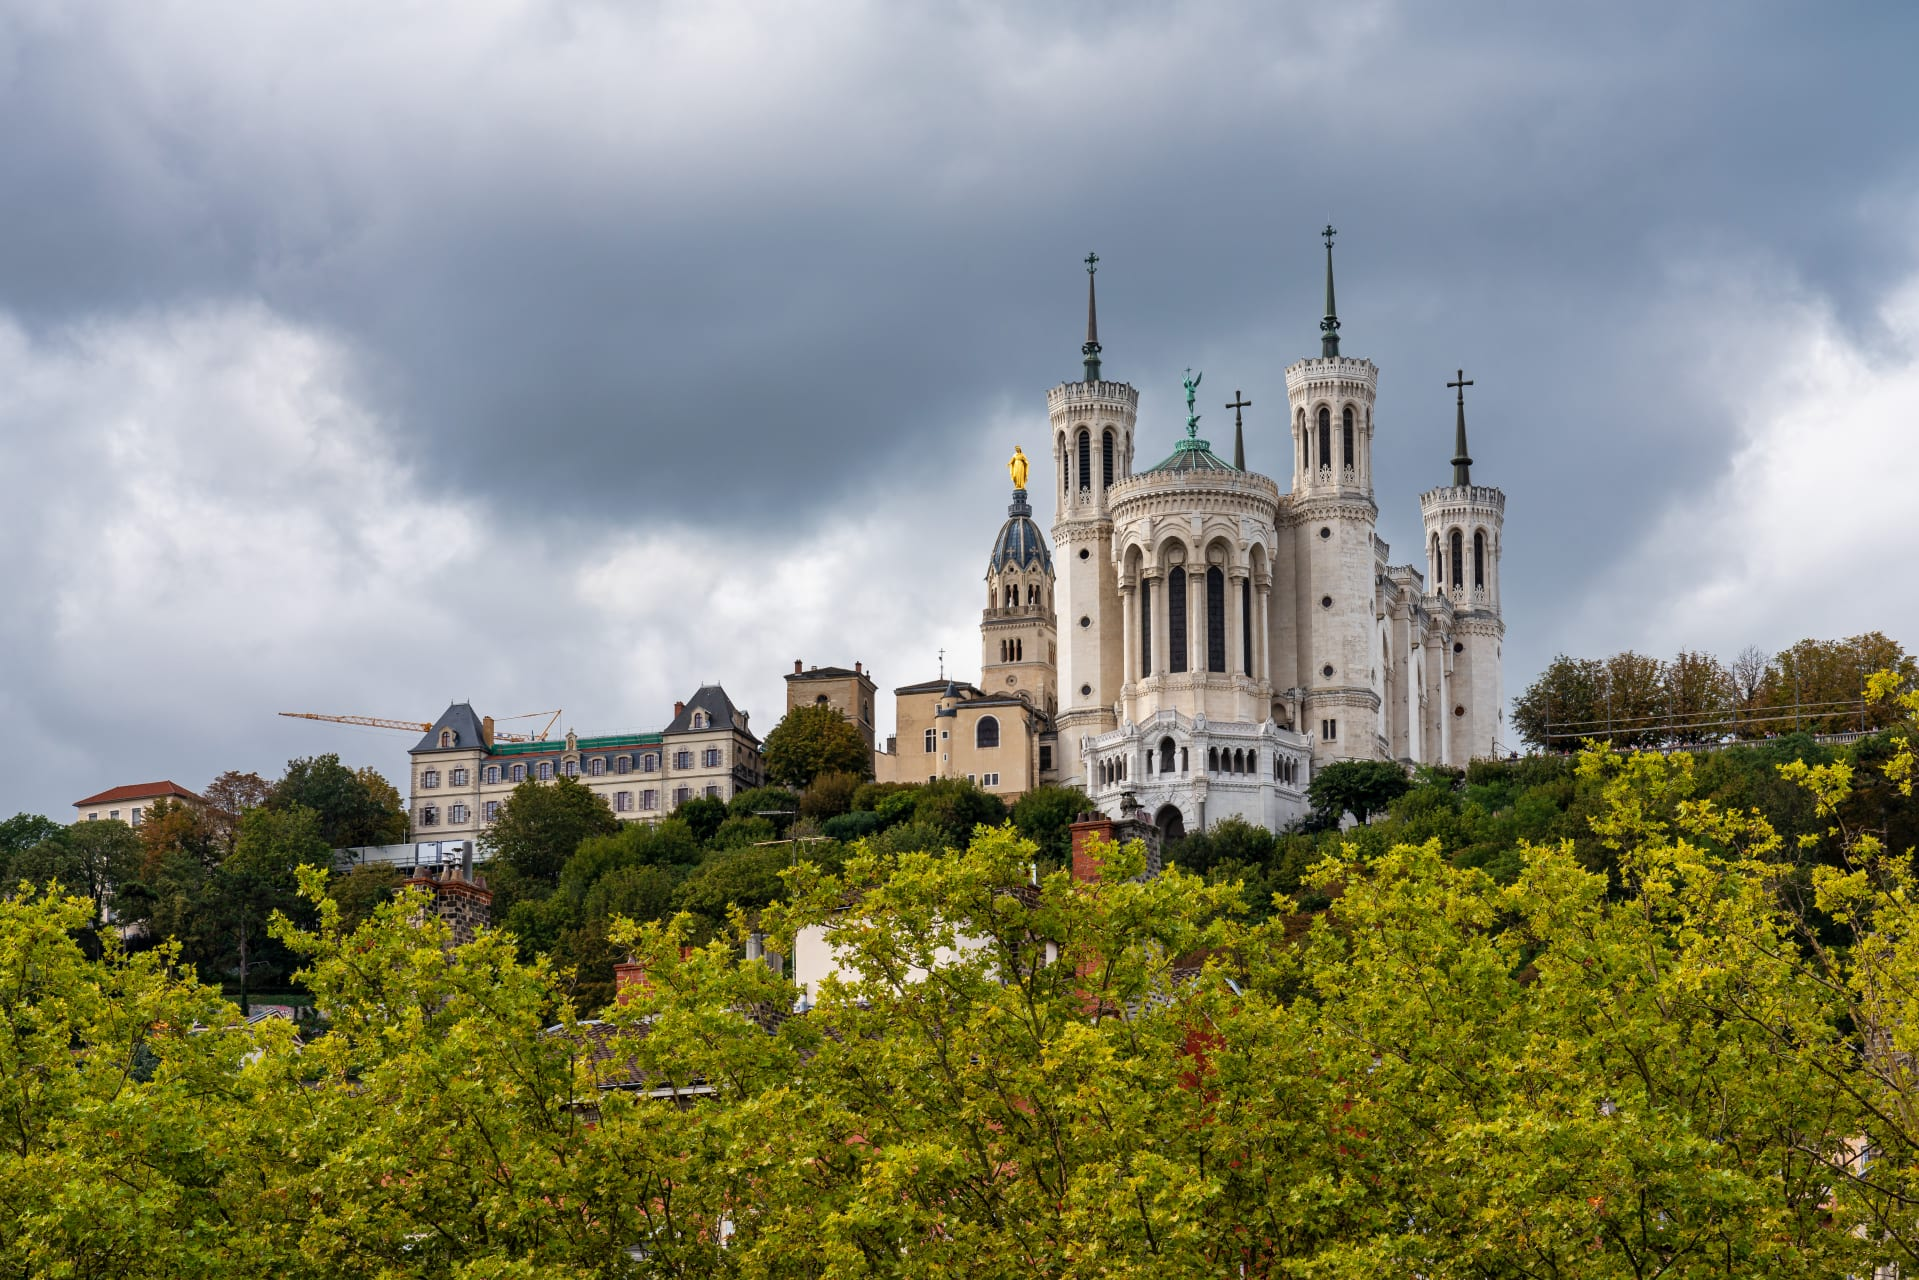 Lyon - Fourvière Hill – Romans and Religion on Top of the City